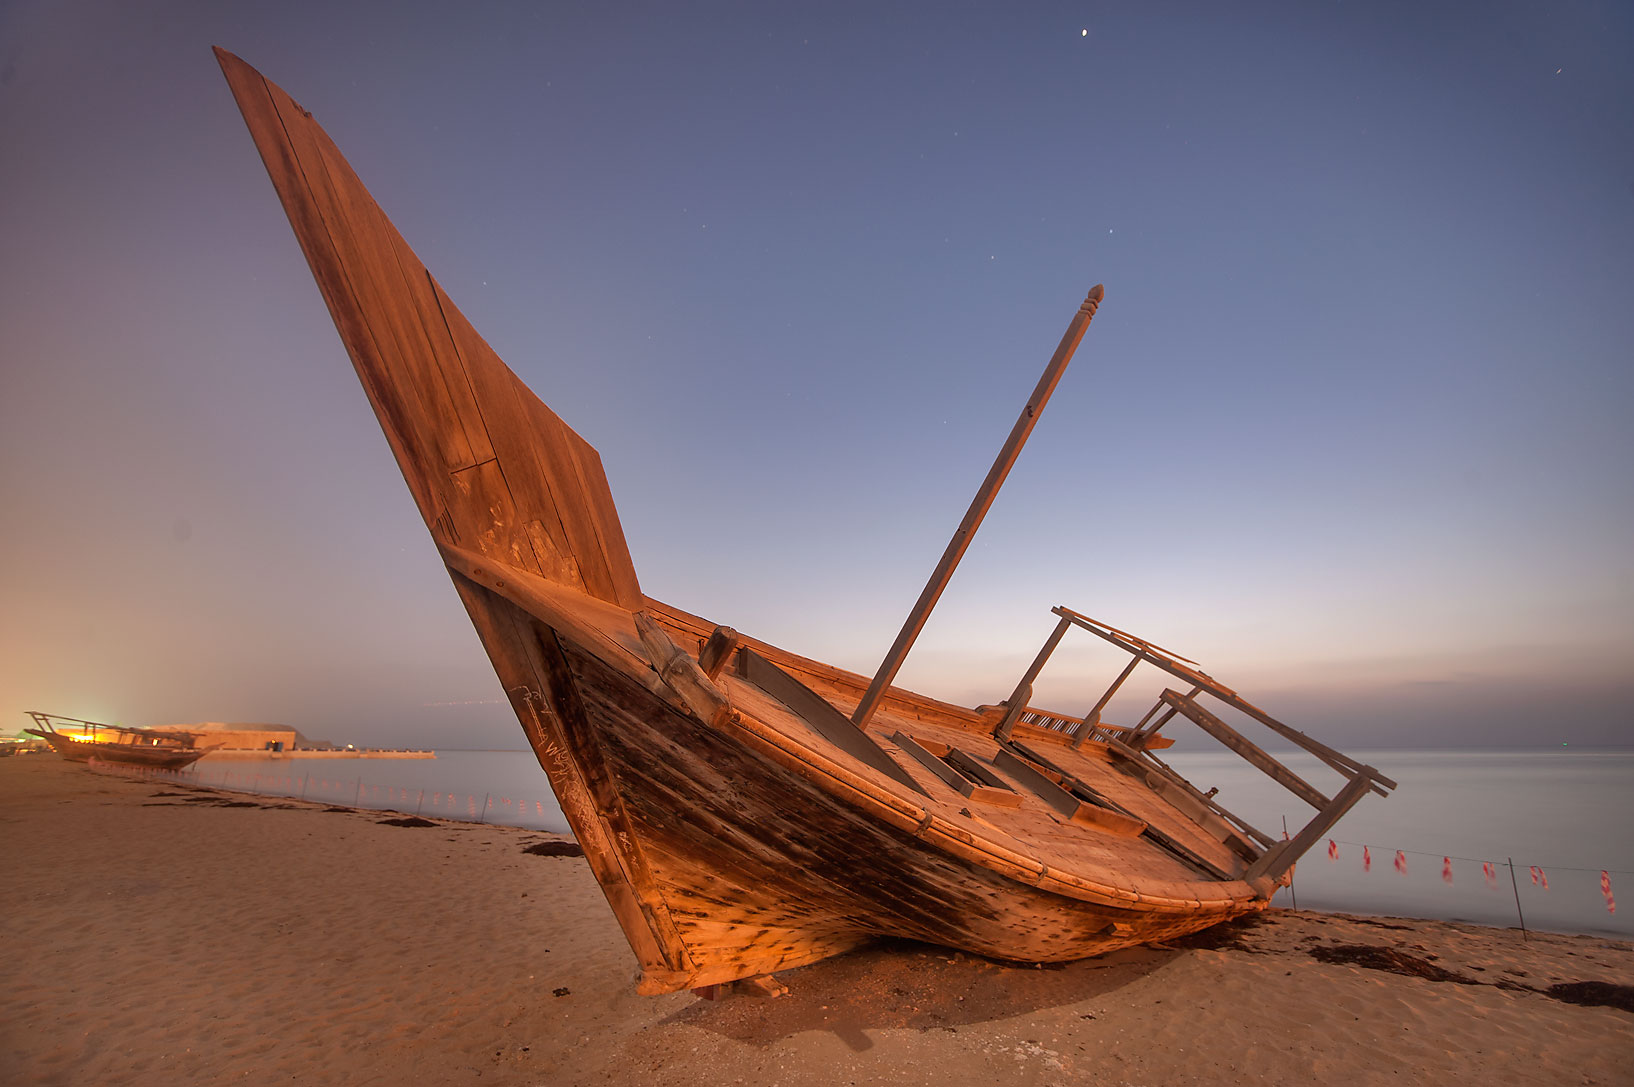 Beached dhow fishing boat at morning dusk. Al Wakra, Qatar